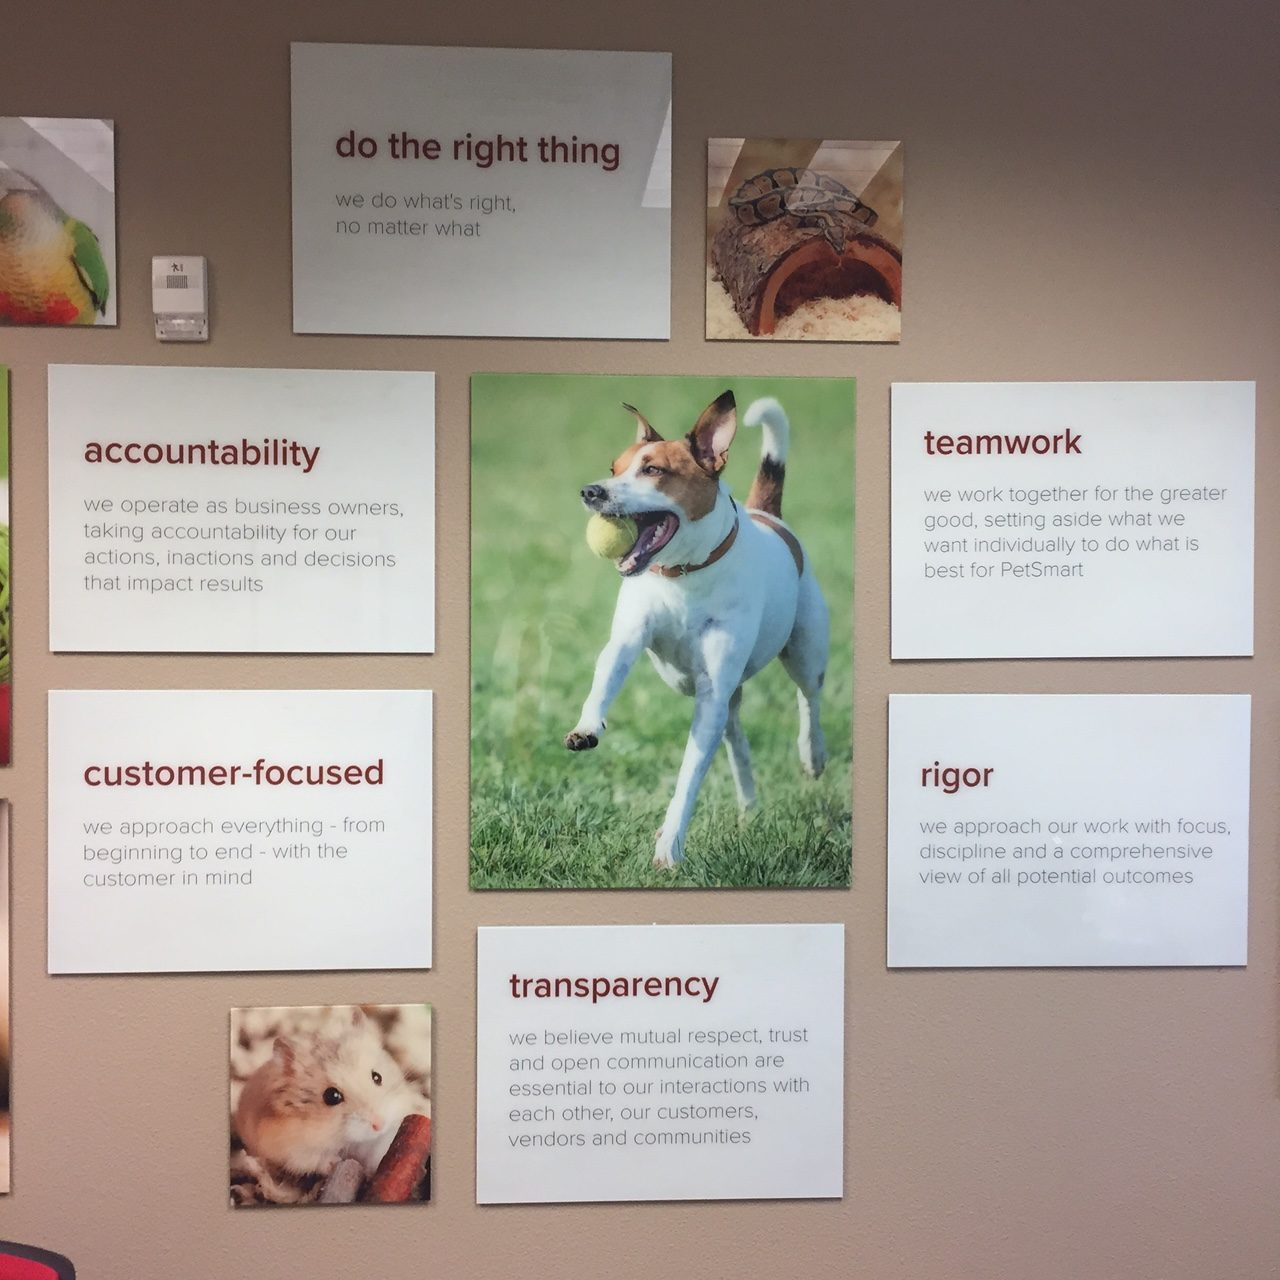 PetSmart Values Focus on the Shopper